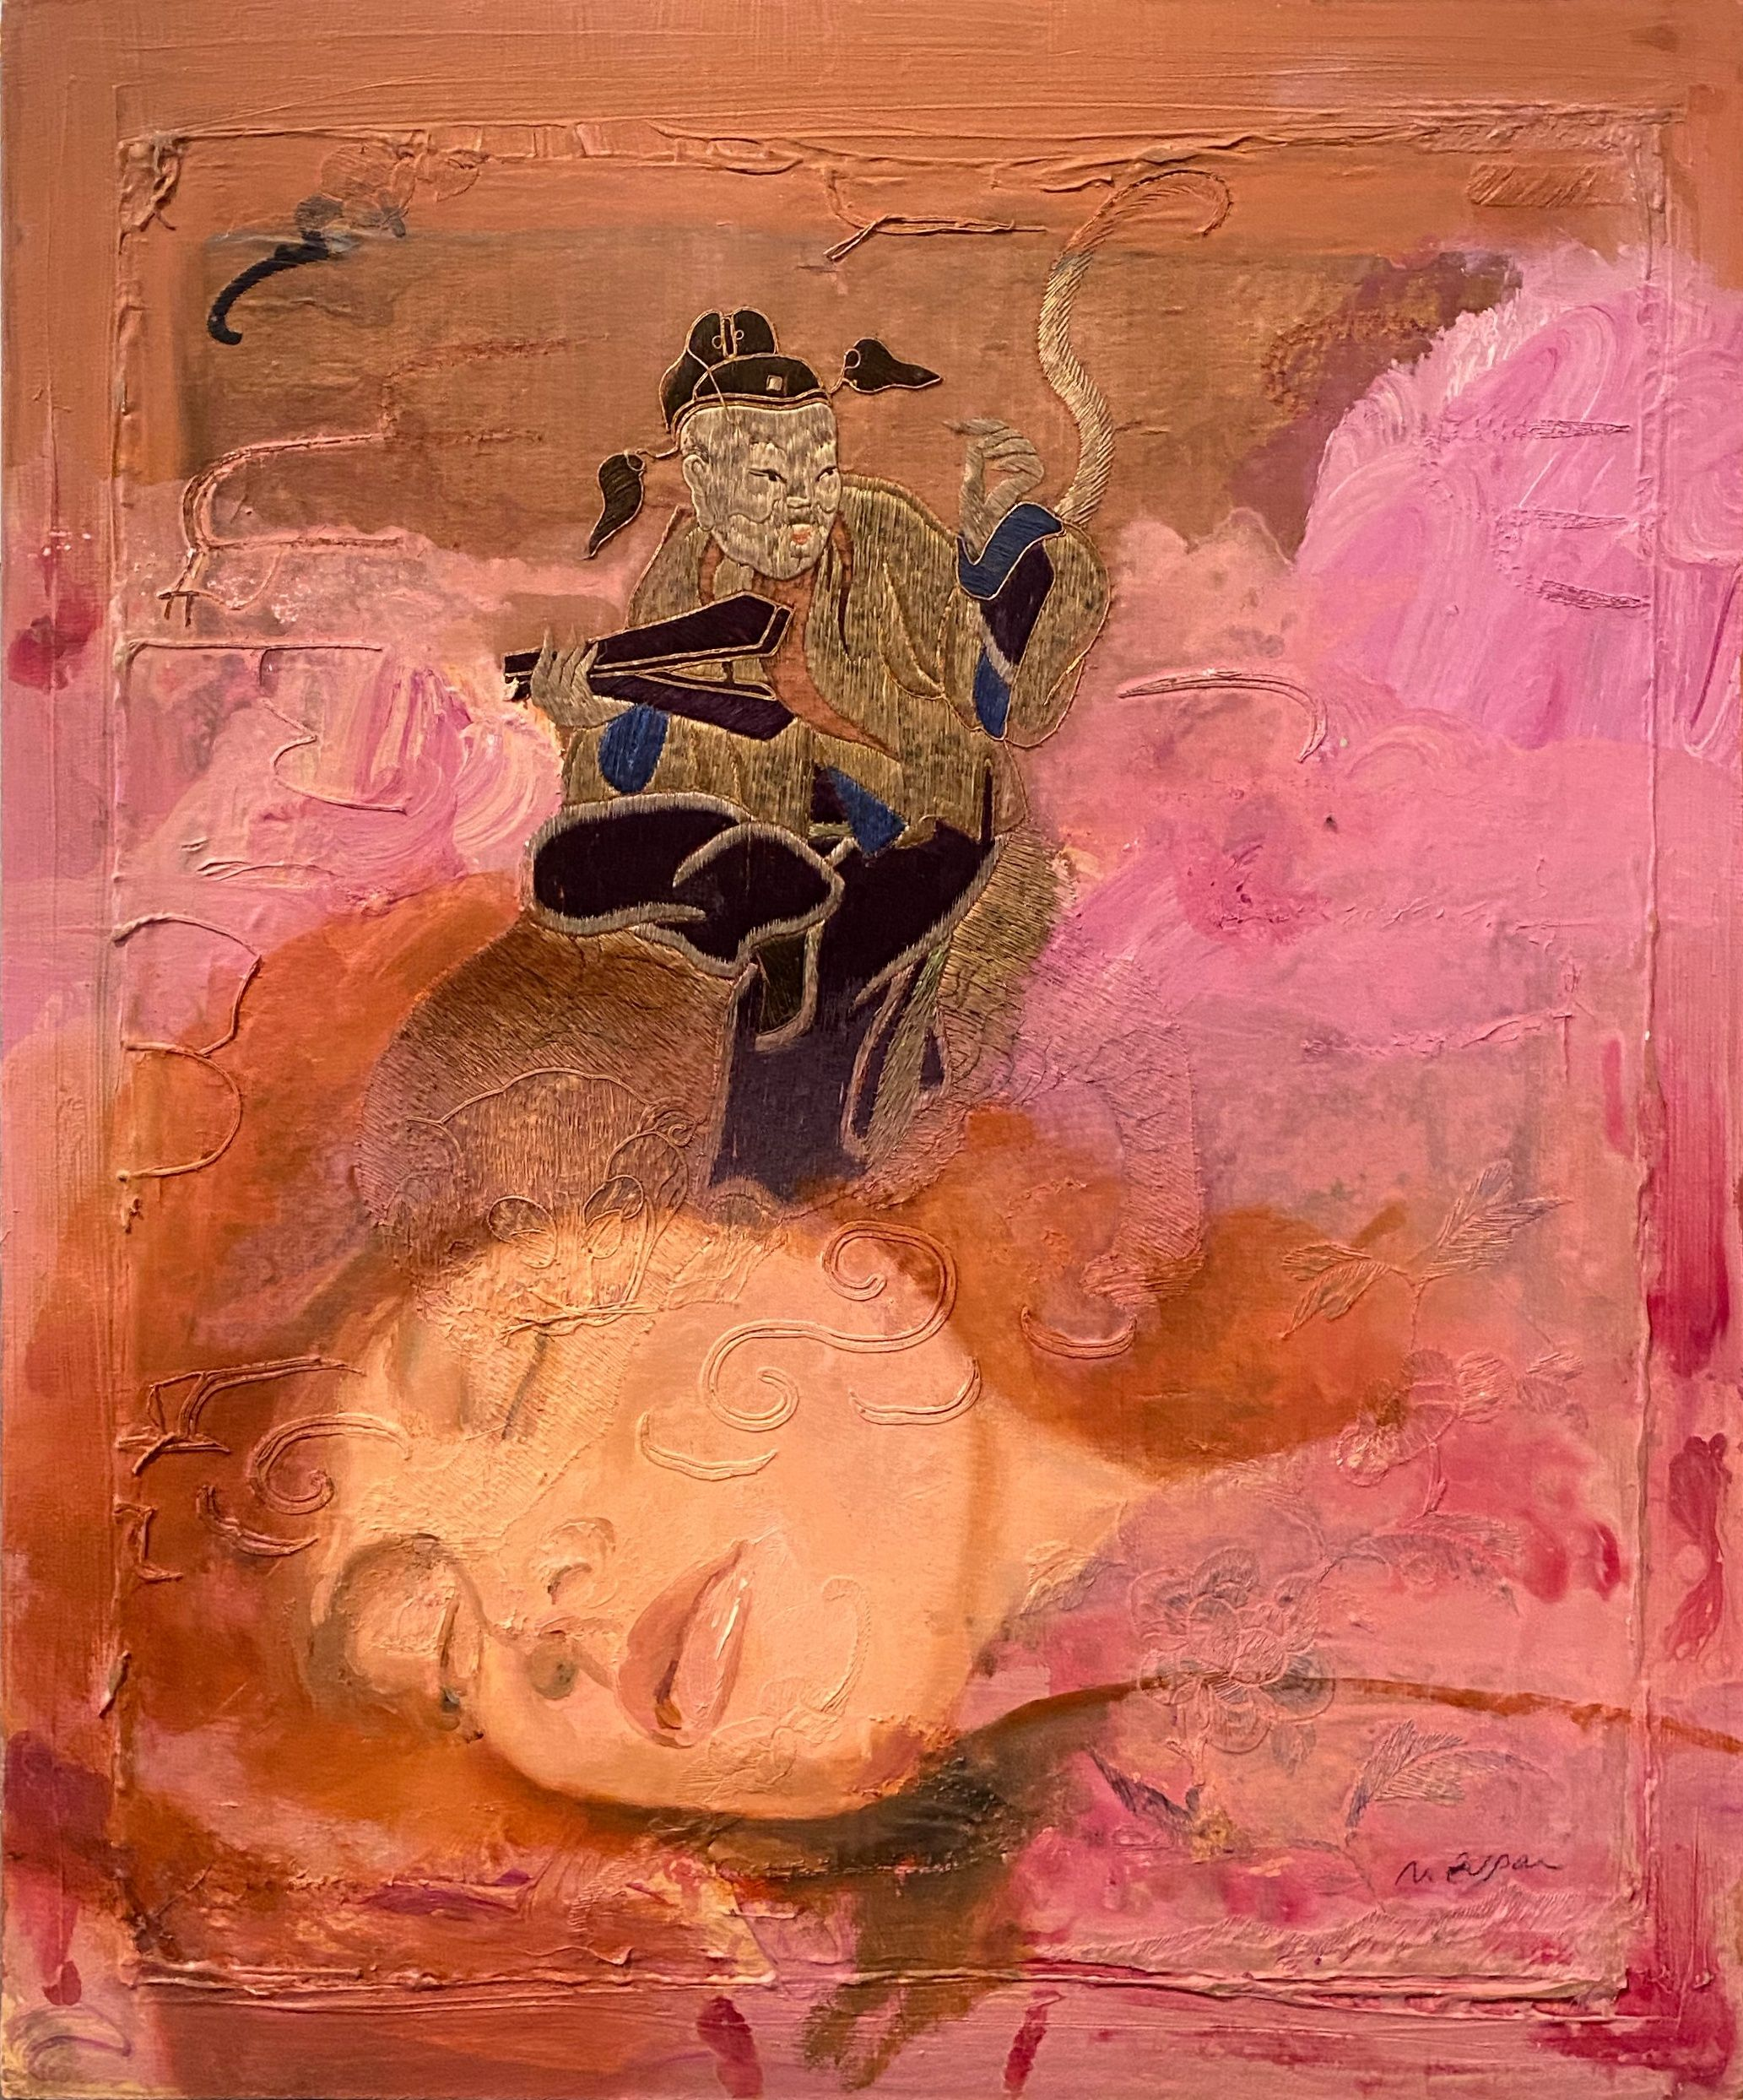 Natasha Zupan - Painting - Man on The Tiger - Off The Wall Gallery Houston